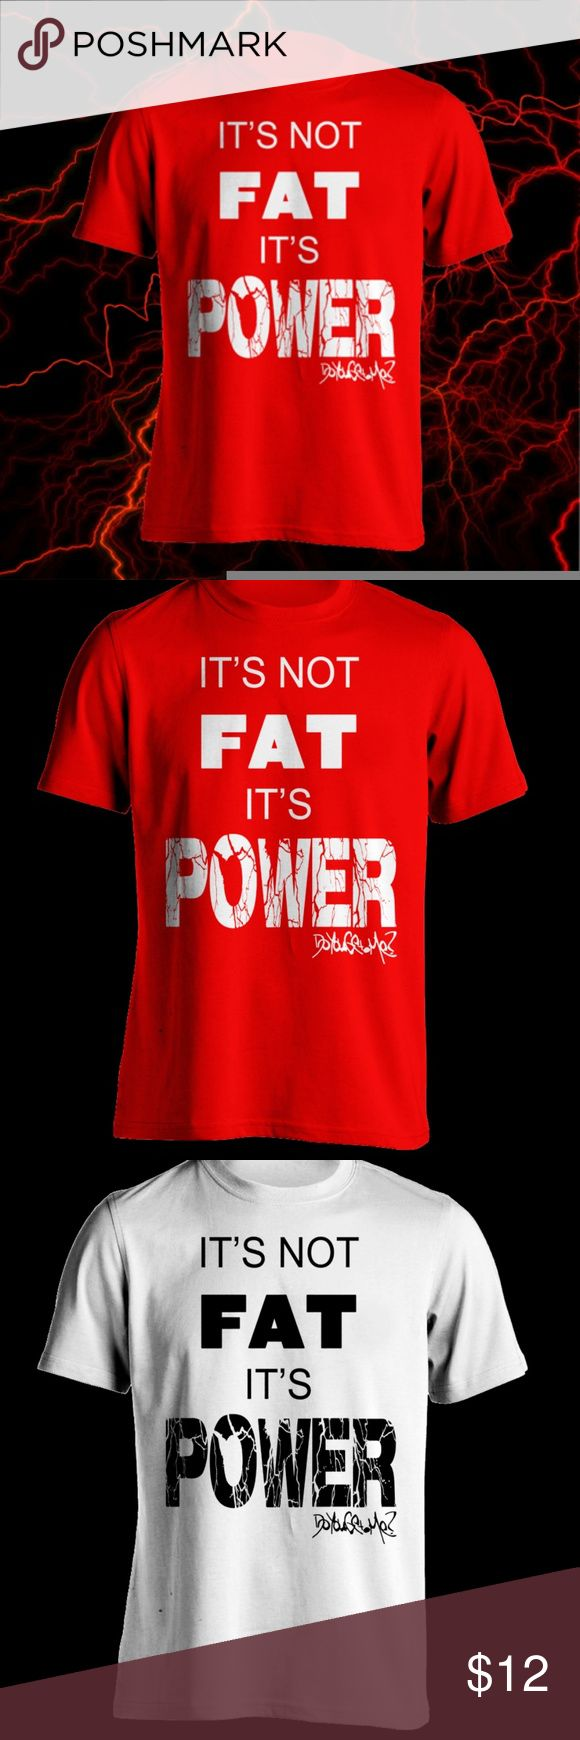 "It's Not FAT, It's POWER - DoYouGet.Me? ★Designer Direct Sale on POSHMARK★   It's Not FAT, It's POWER. This DYGM design is inspired, by a one of the best lines in the movie Paul. As someone that has had some noticeable ""POWER"", this shirt is very fitting for the DoYouGet.Me? brand. This shirt is also great as a gym or work out T-shirt.  Colors:  RED=[Red shirt w/white ink] WHITE=[white shirt w/black ink]  Unisex Adult T-Shirt Sizes: S, M, L, XL, XXL DoYouGet.Me? Shirts Tees - Short Sleeve"